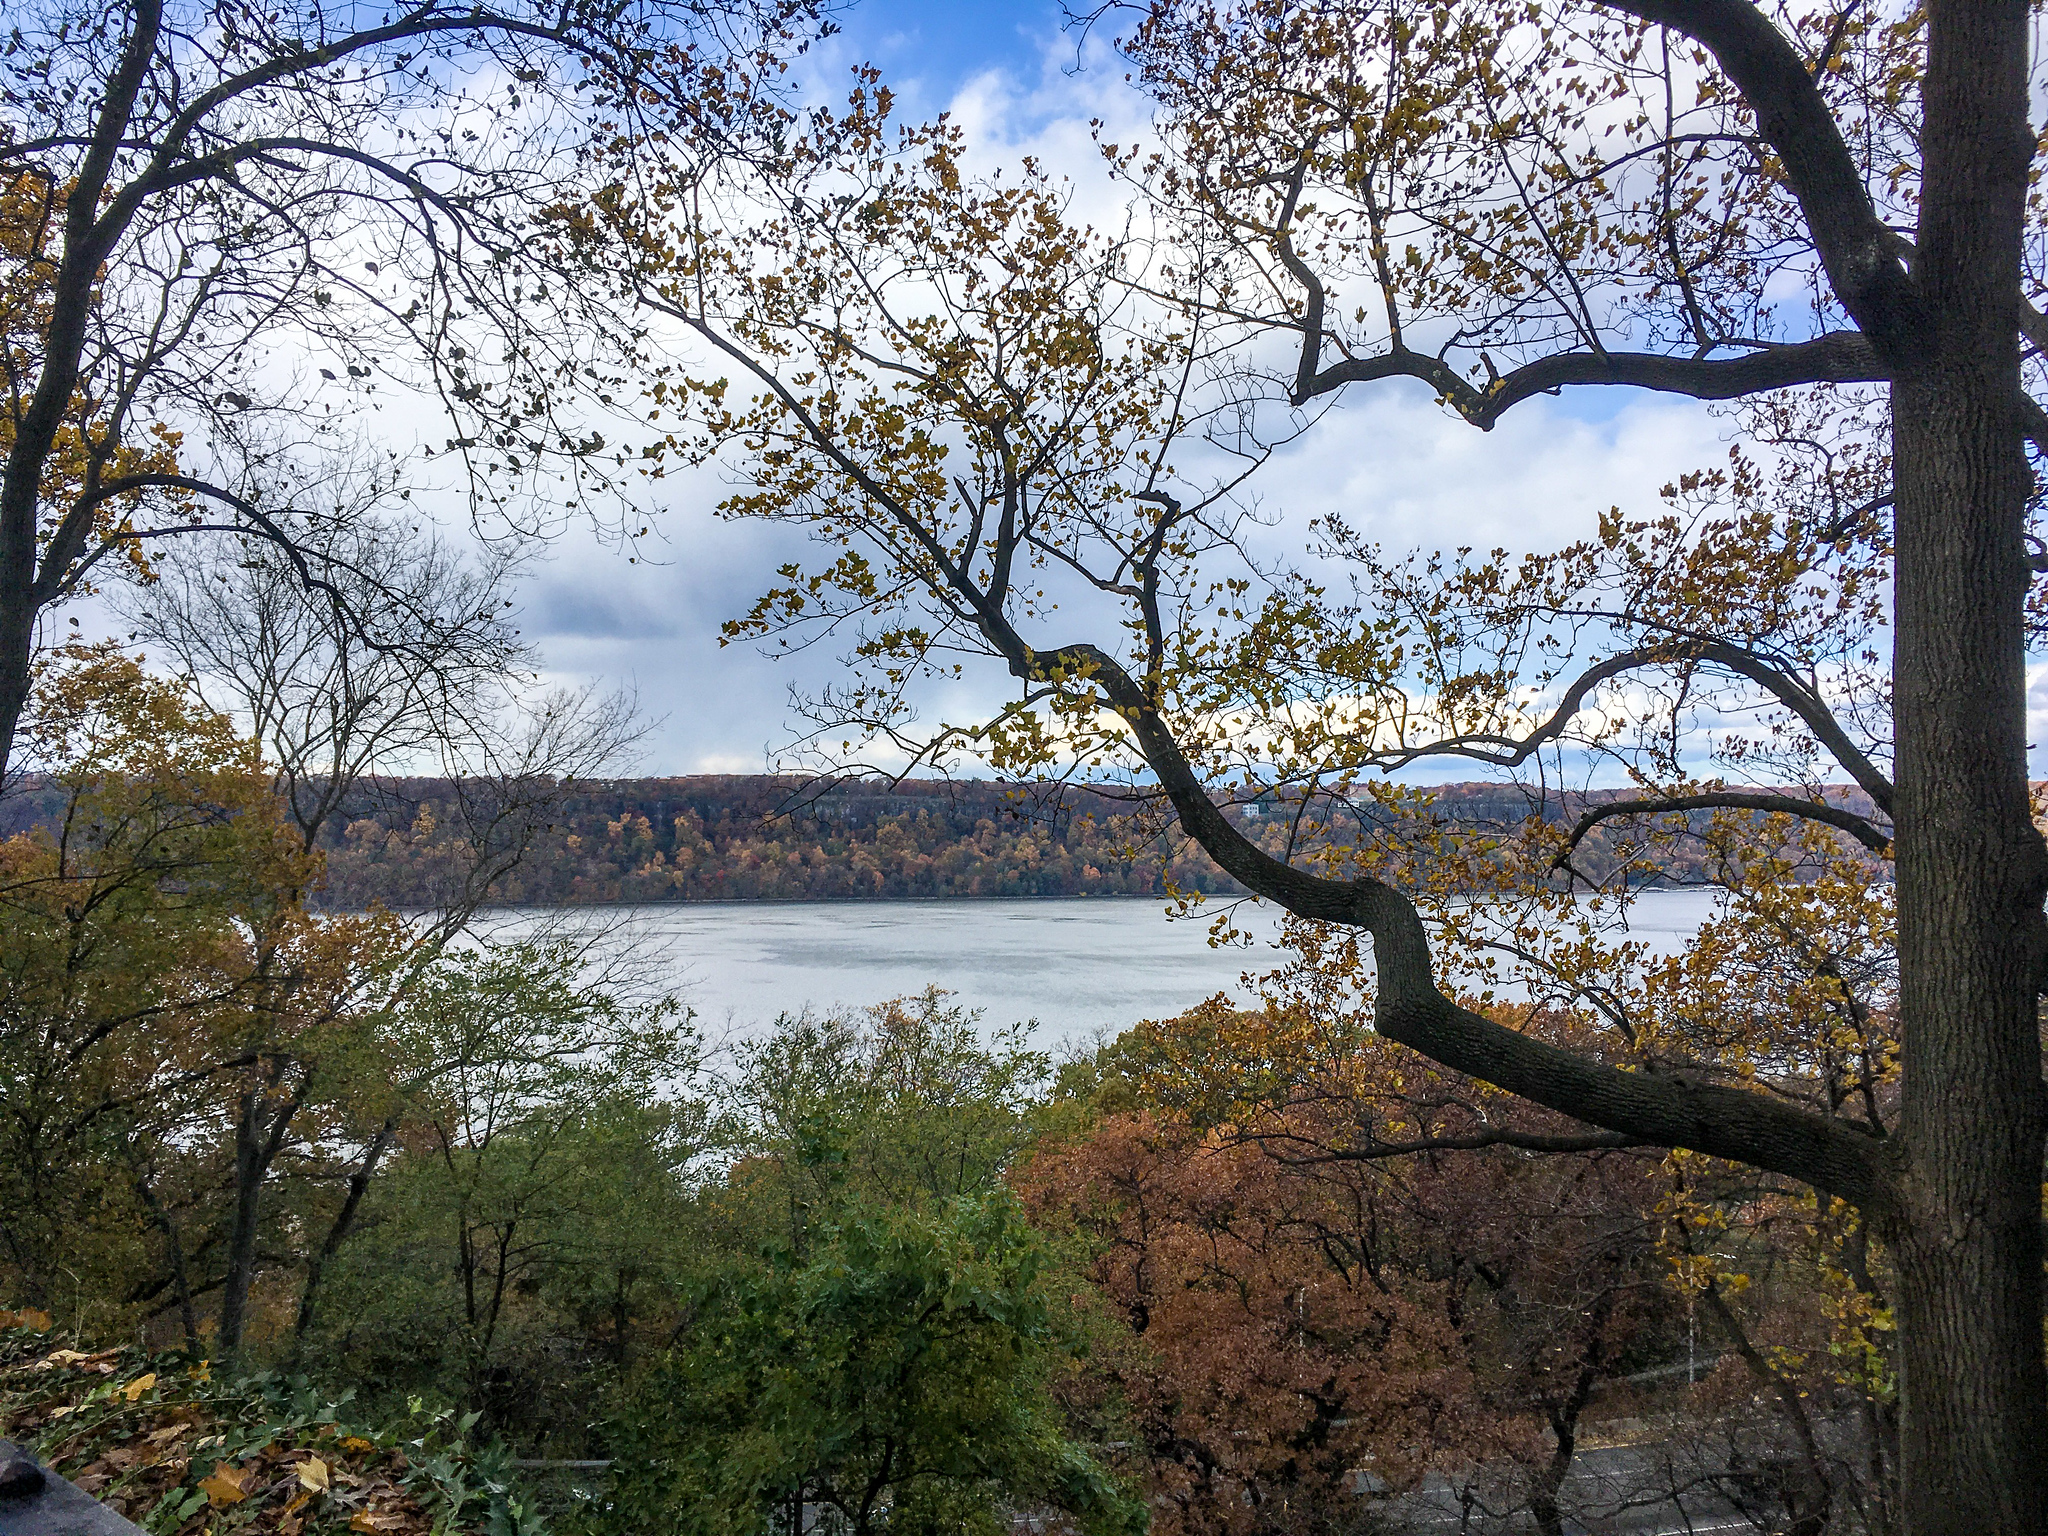 what to wear in nyc in november: make sure you're warm because fort tyron park gets chilly in fall